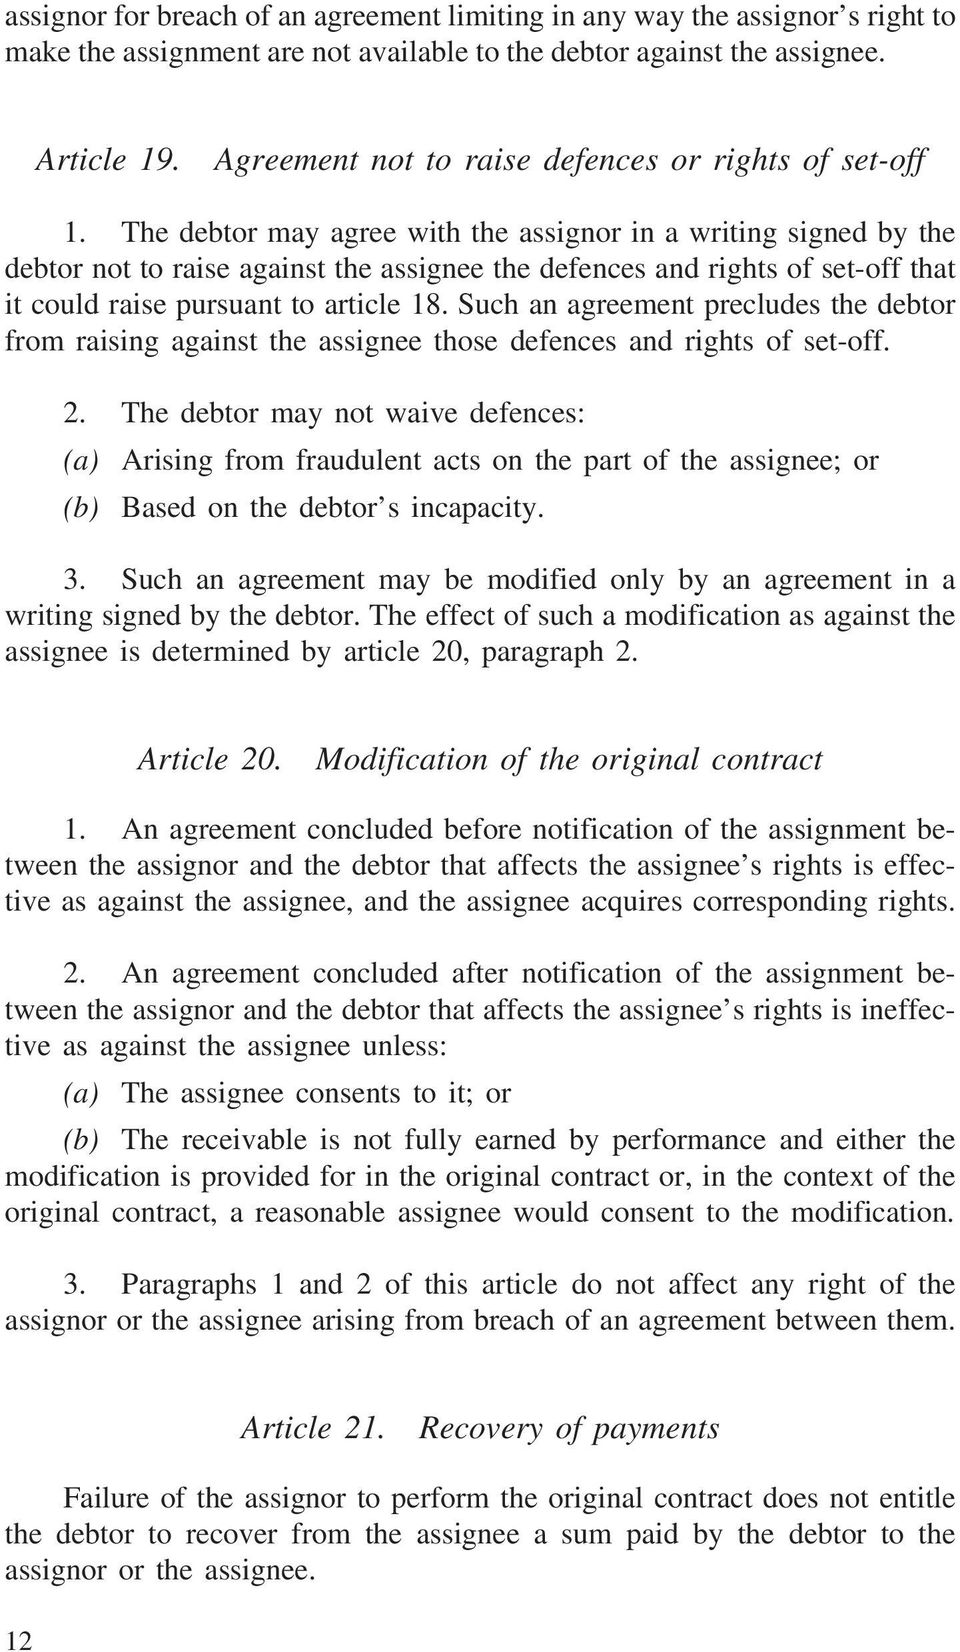 The debtor may agree with the assignor in a writing signed by the debtor not to raise against the assignee the defences and rights of set-off that it could raise pursuant to article 18.